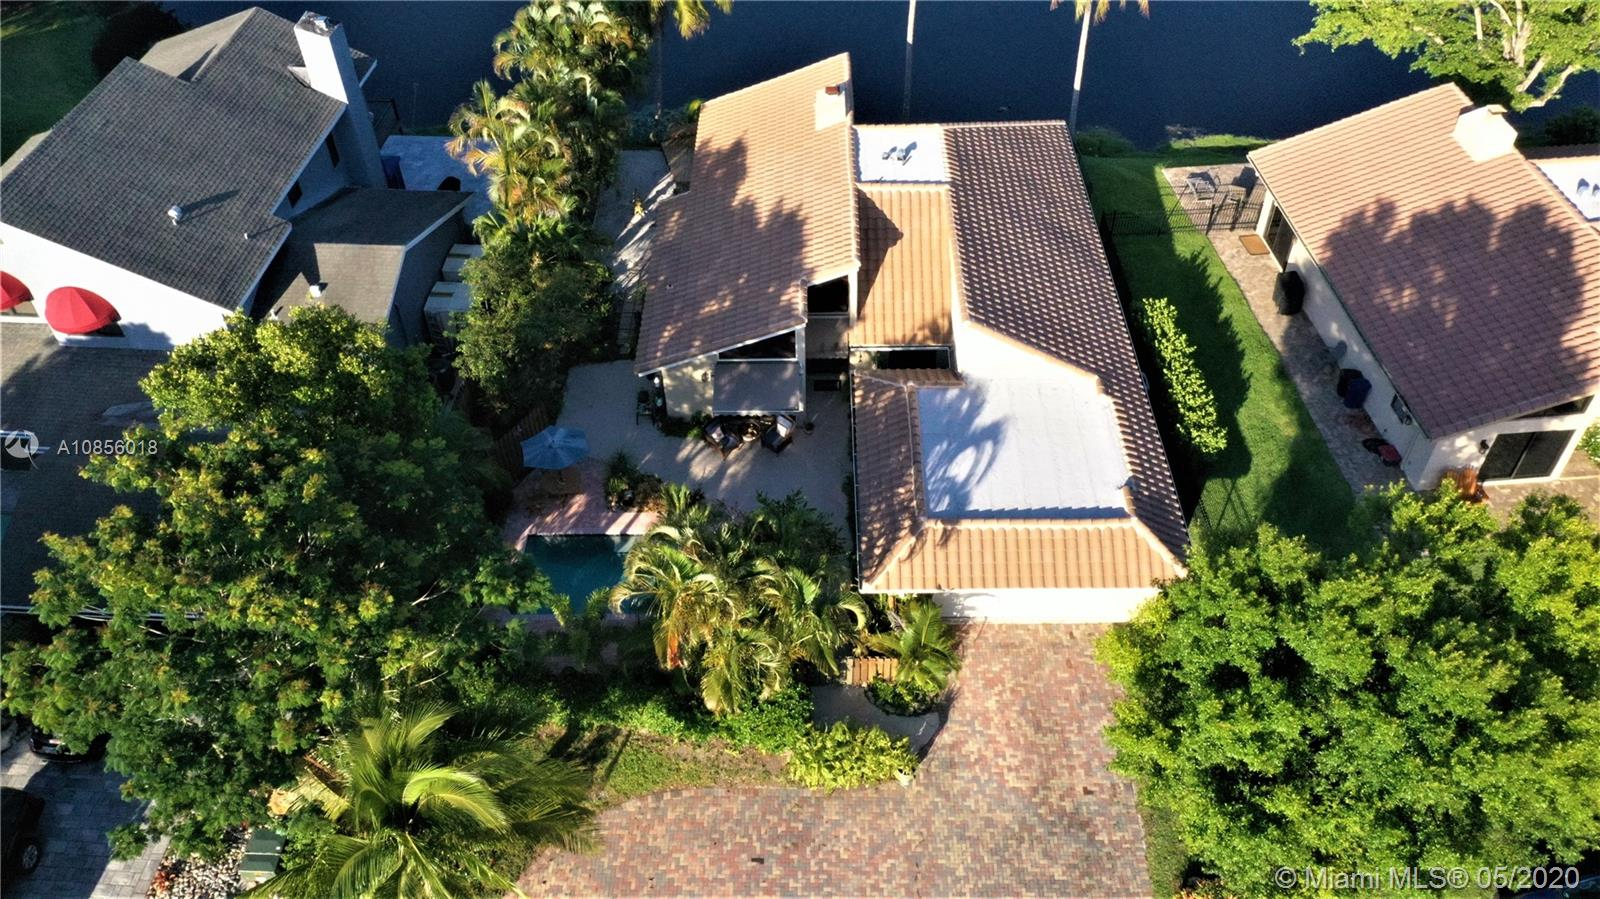 Rare Waterfront Opportunity - 3 Bed - 3.5 Bath - 2417sq/ft - Pool (auto chlorinated) - Waterfront w/ Golf Course View - Brand New Roof - 2 Car Garage - Wood & Tile Throughout - Spacious Master Suite - Wood Burning Fireplace - Large Circular Driveway - 2016 AC - New Wooden Deck - Tropical Landscape - MUST SEE!!